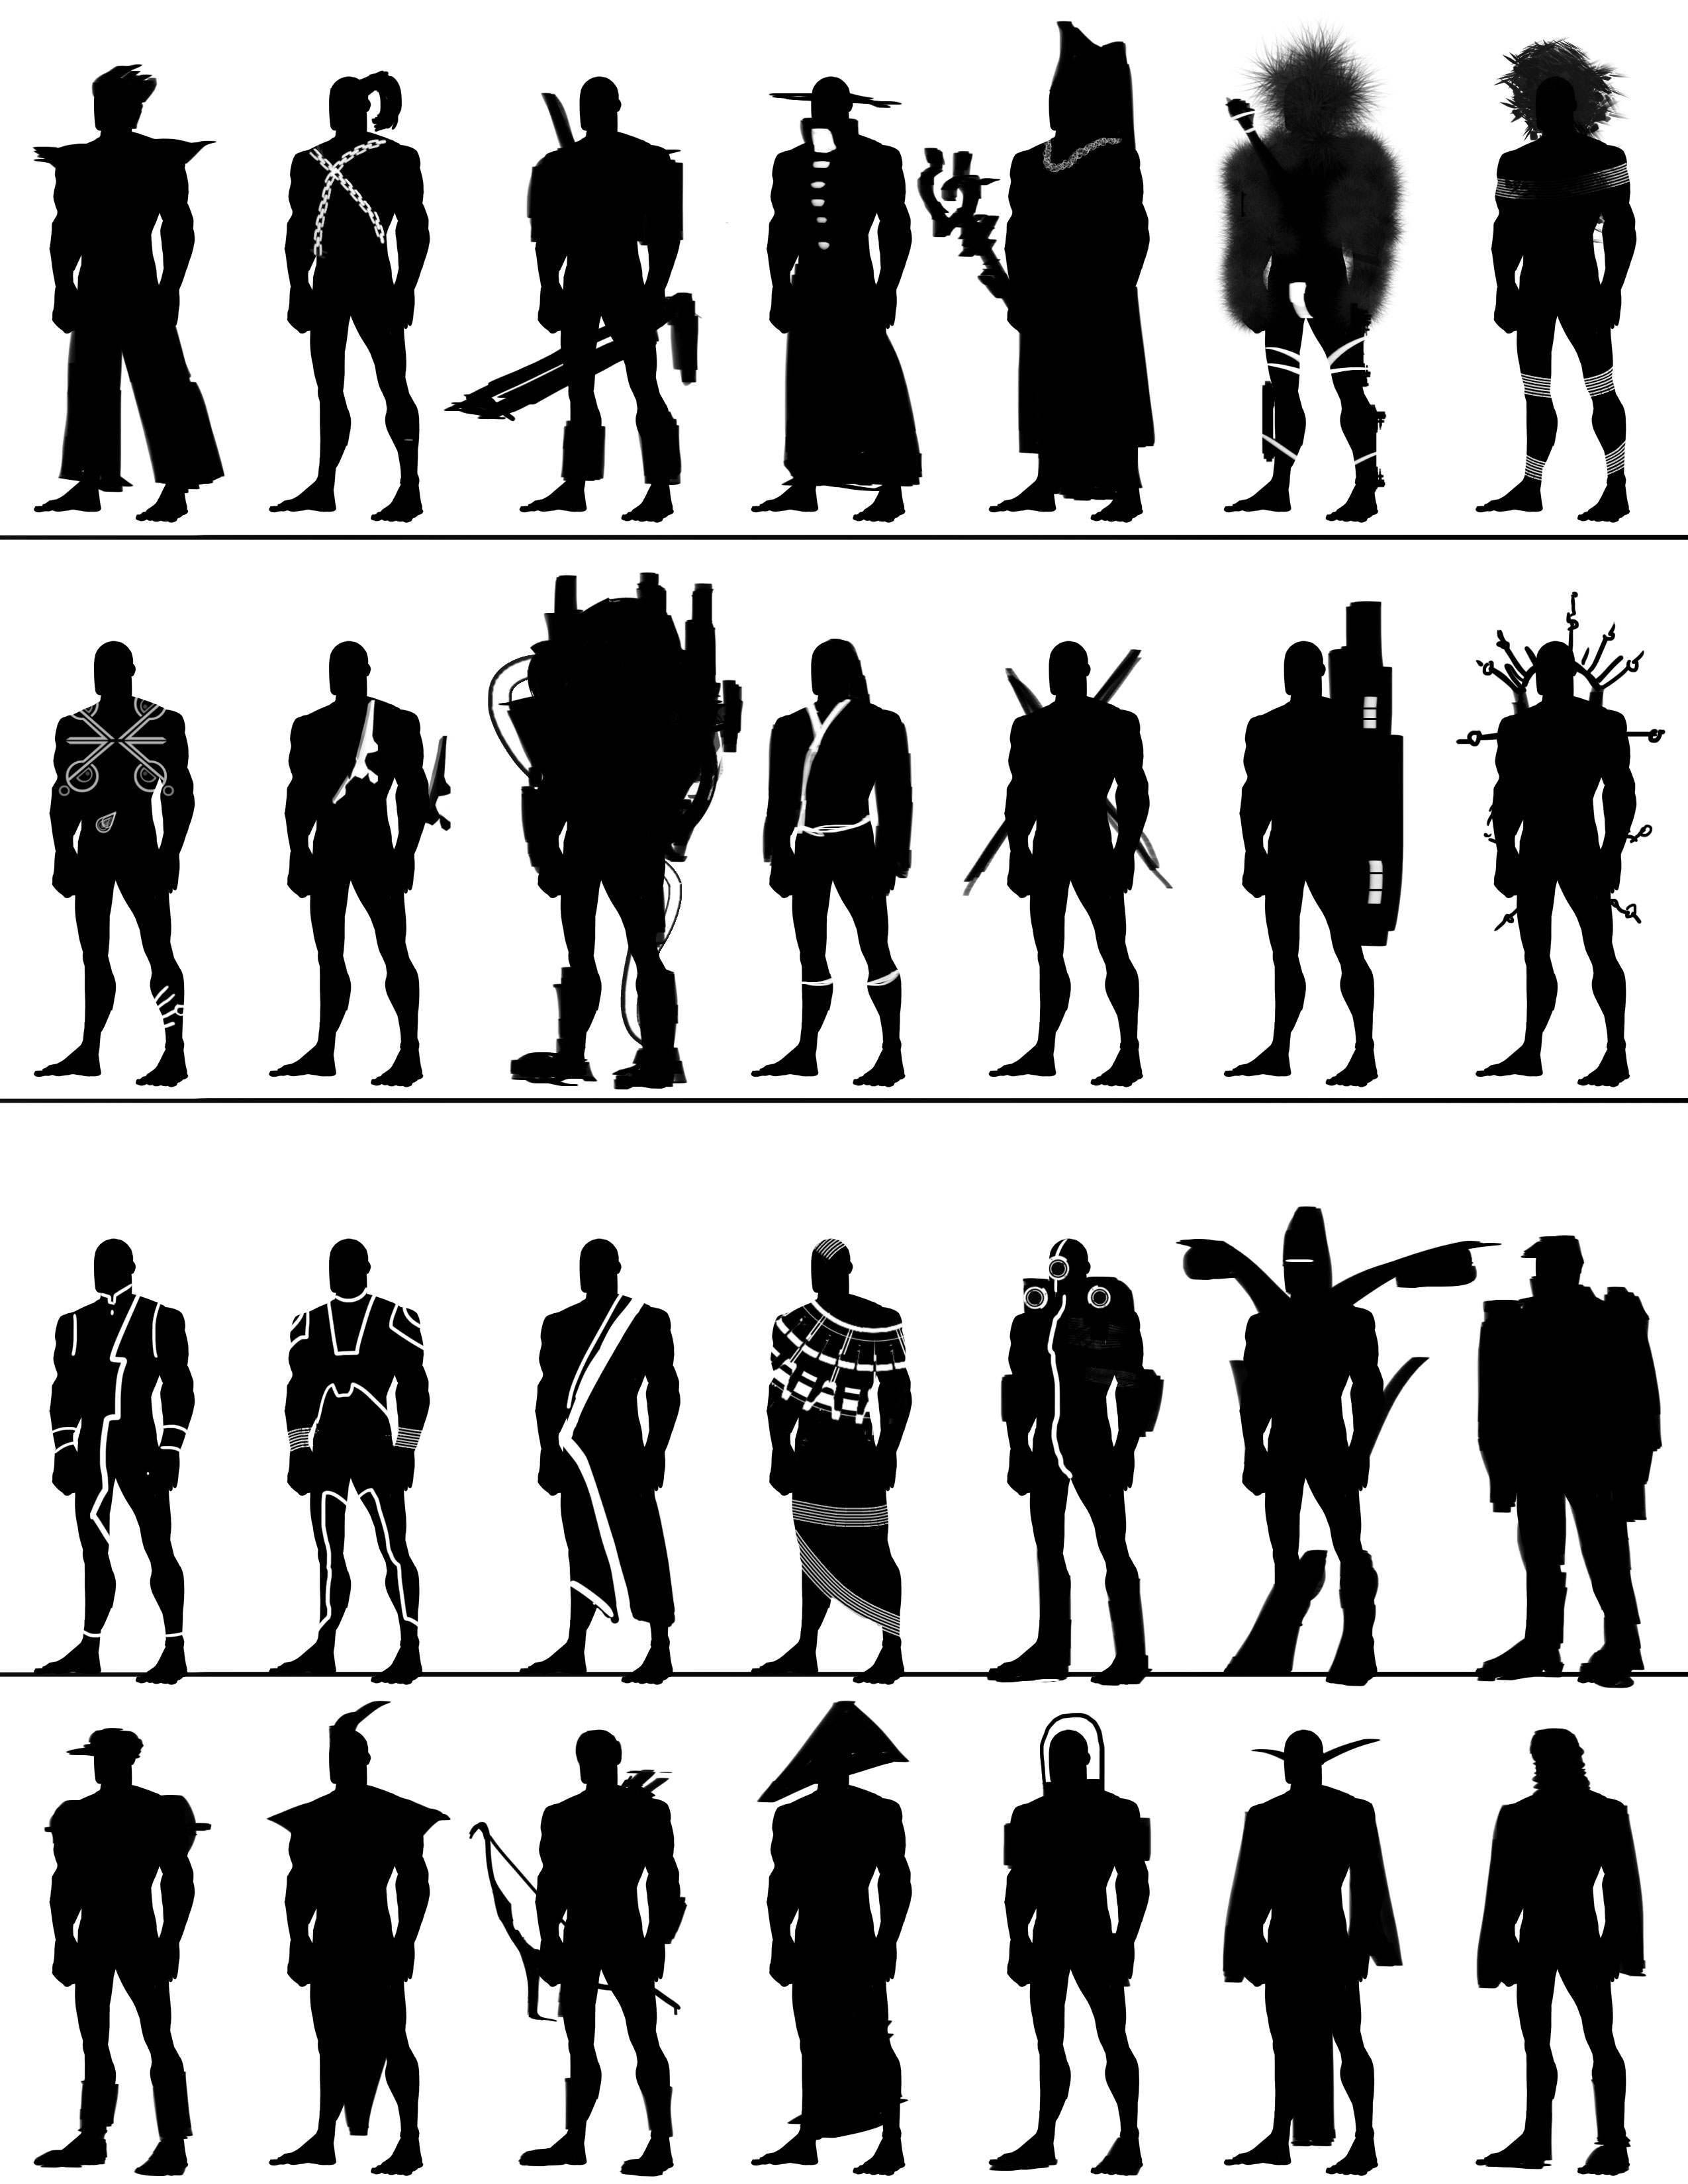 Character Design Silhouette Tutorial : Images about character design silhouette on